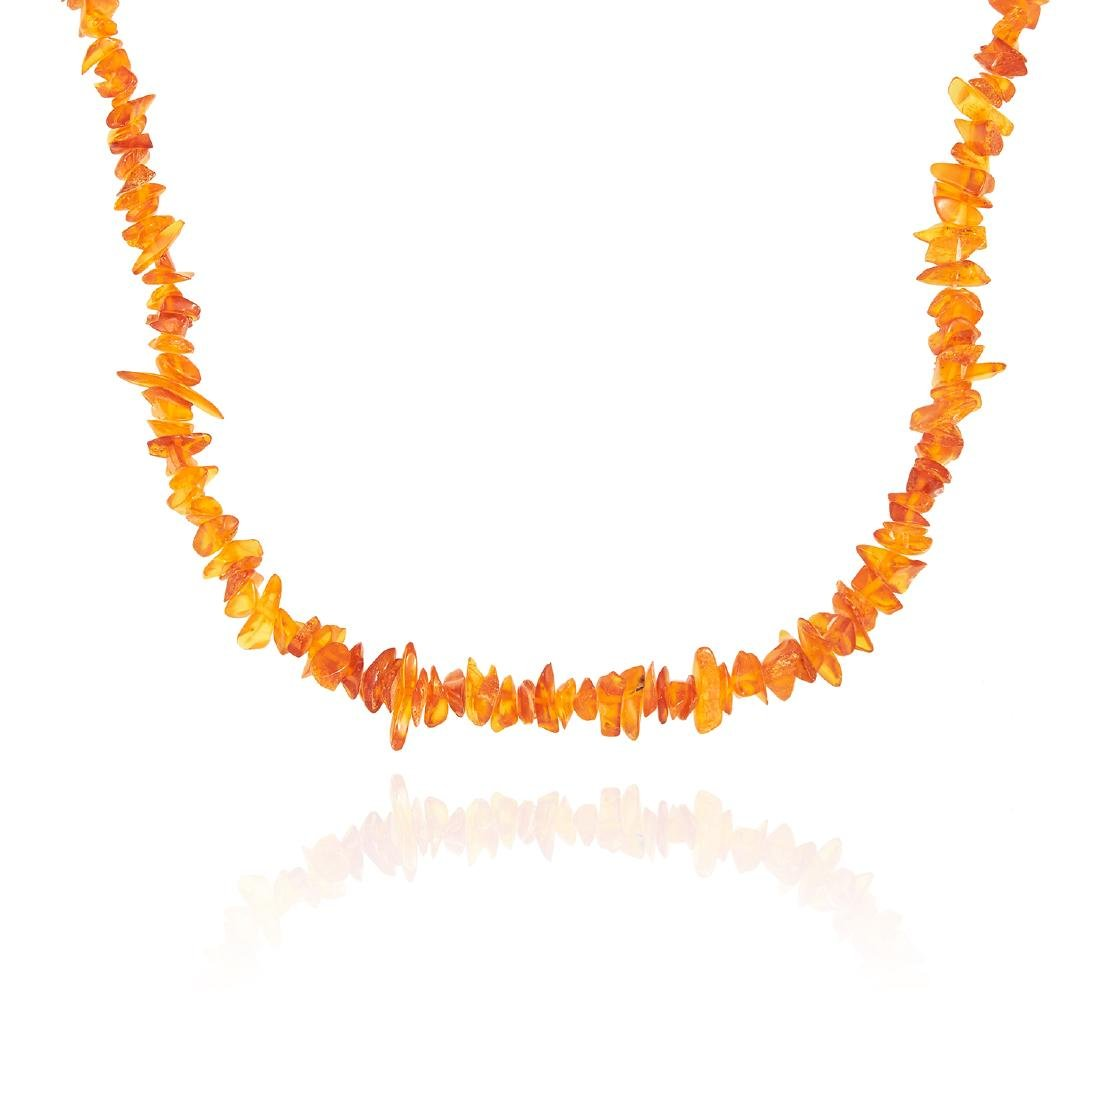 AN AMBER BEAD NECKLACE comprising of a single strand of